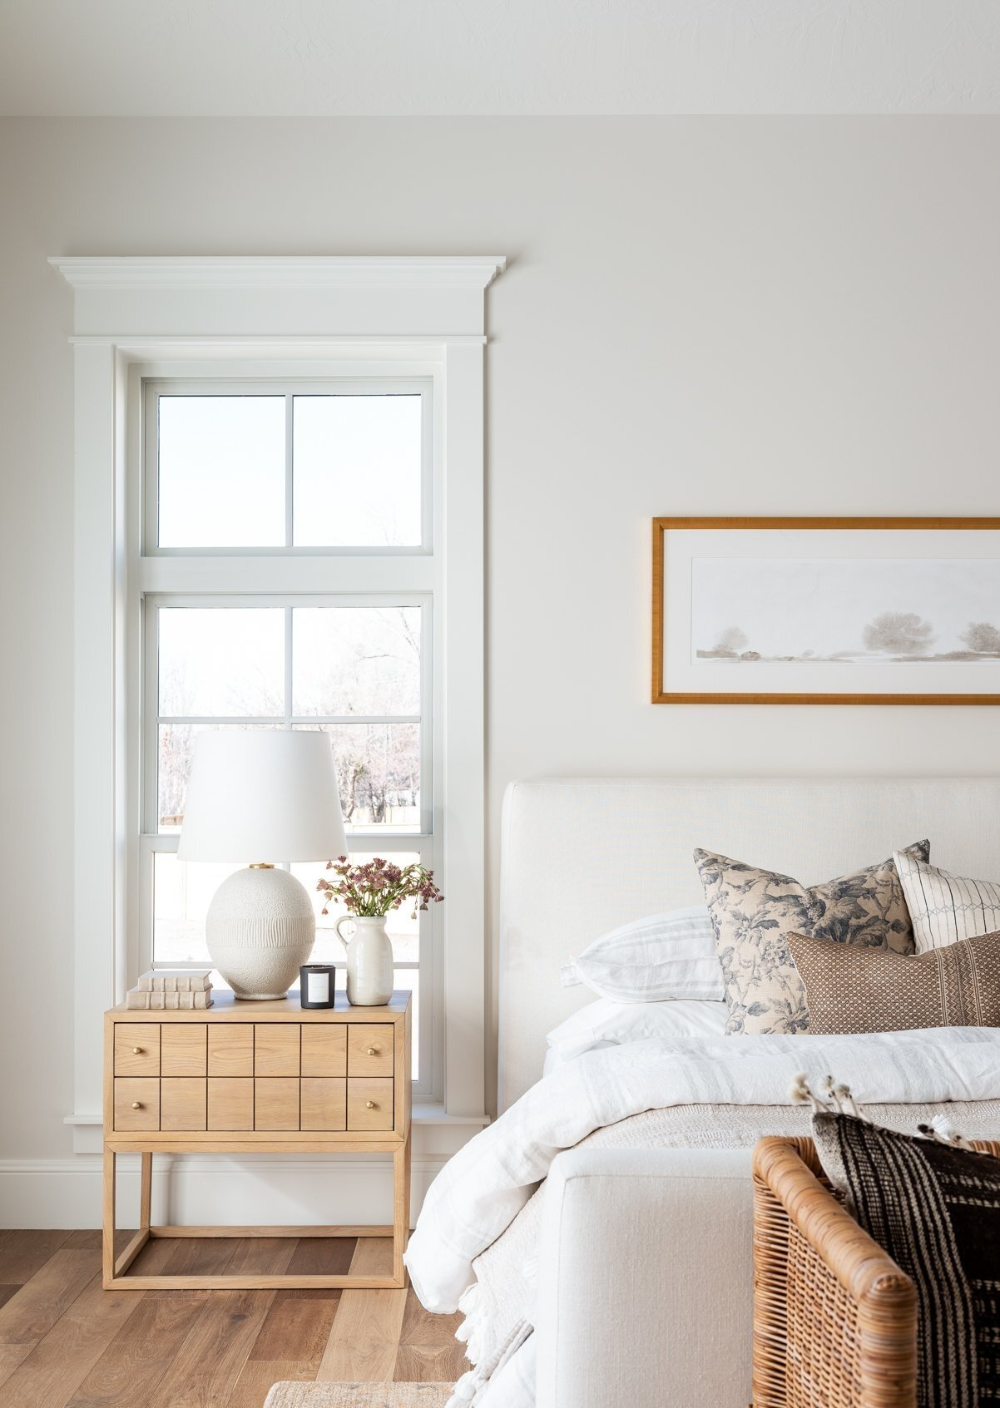 10 tips for creating a peaceful bedroom setting studio on best color for studio walls id=96516